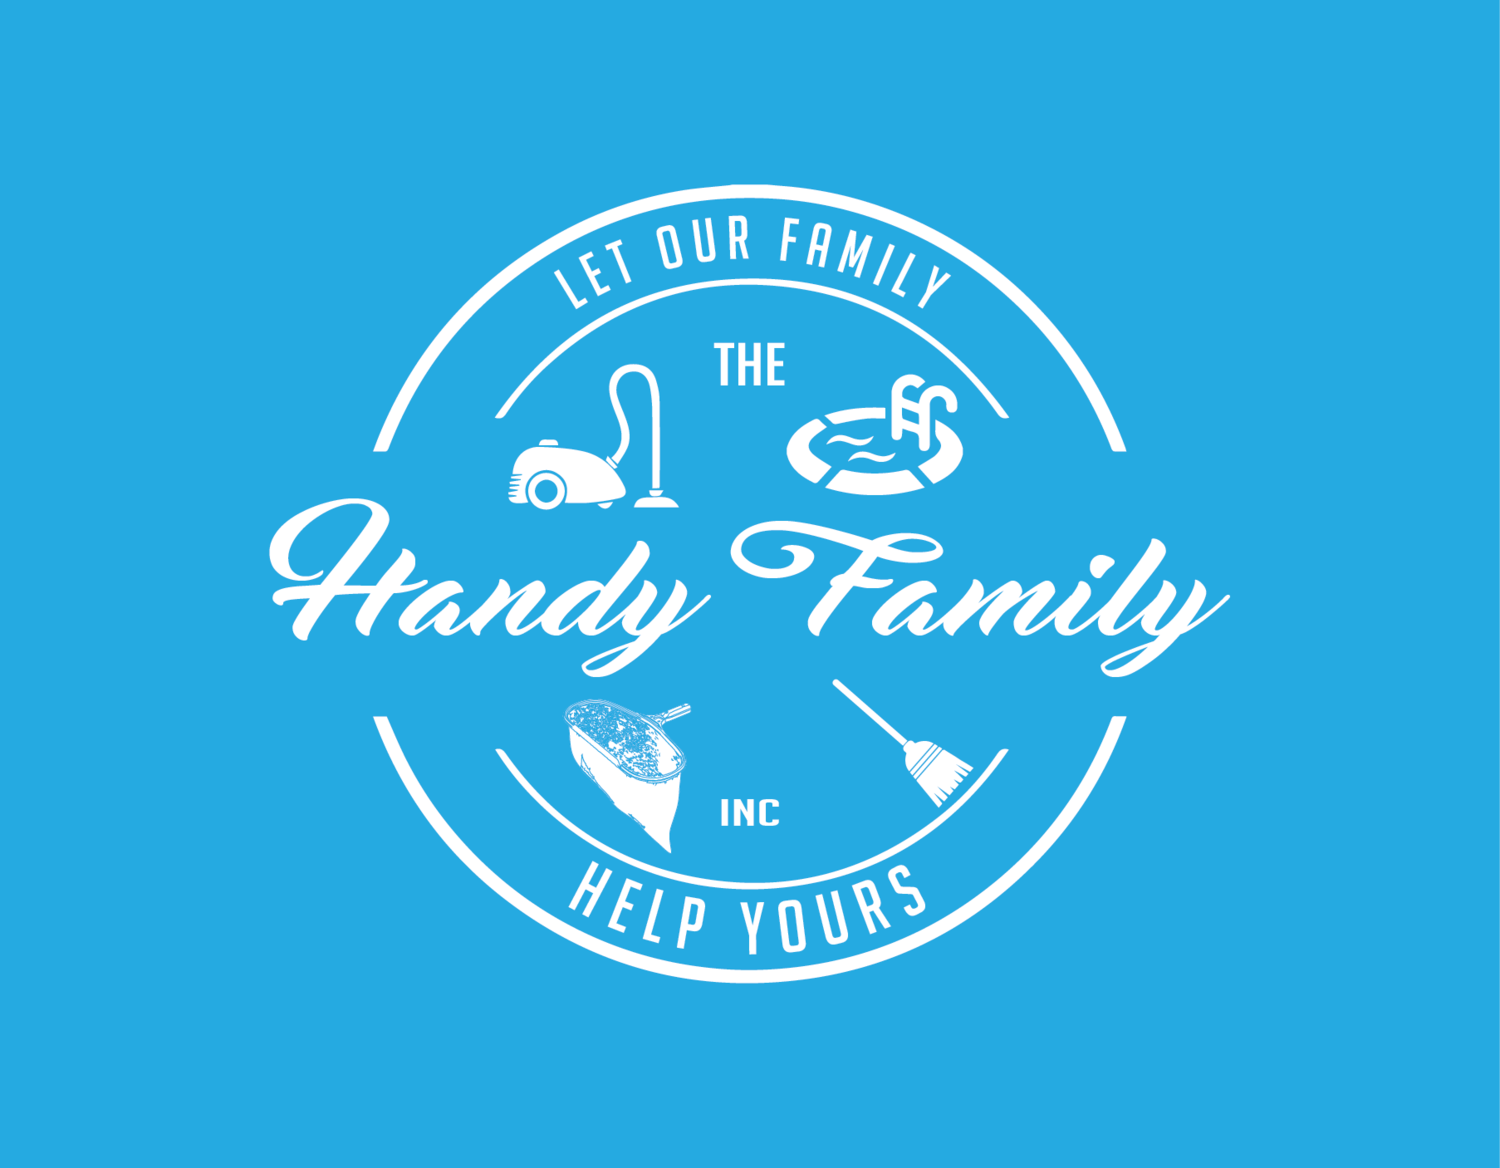 The Handy Family, Inc.